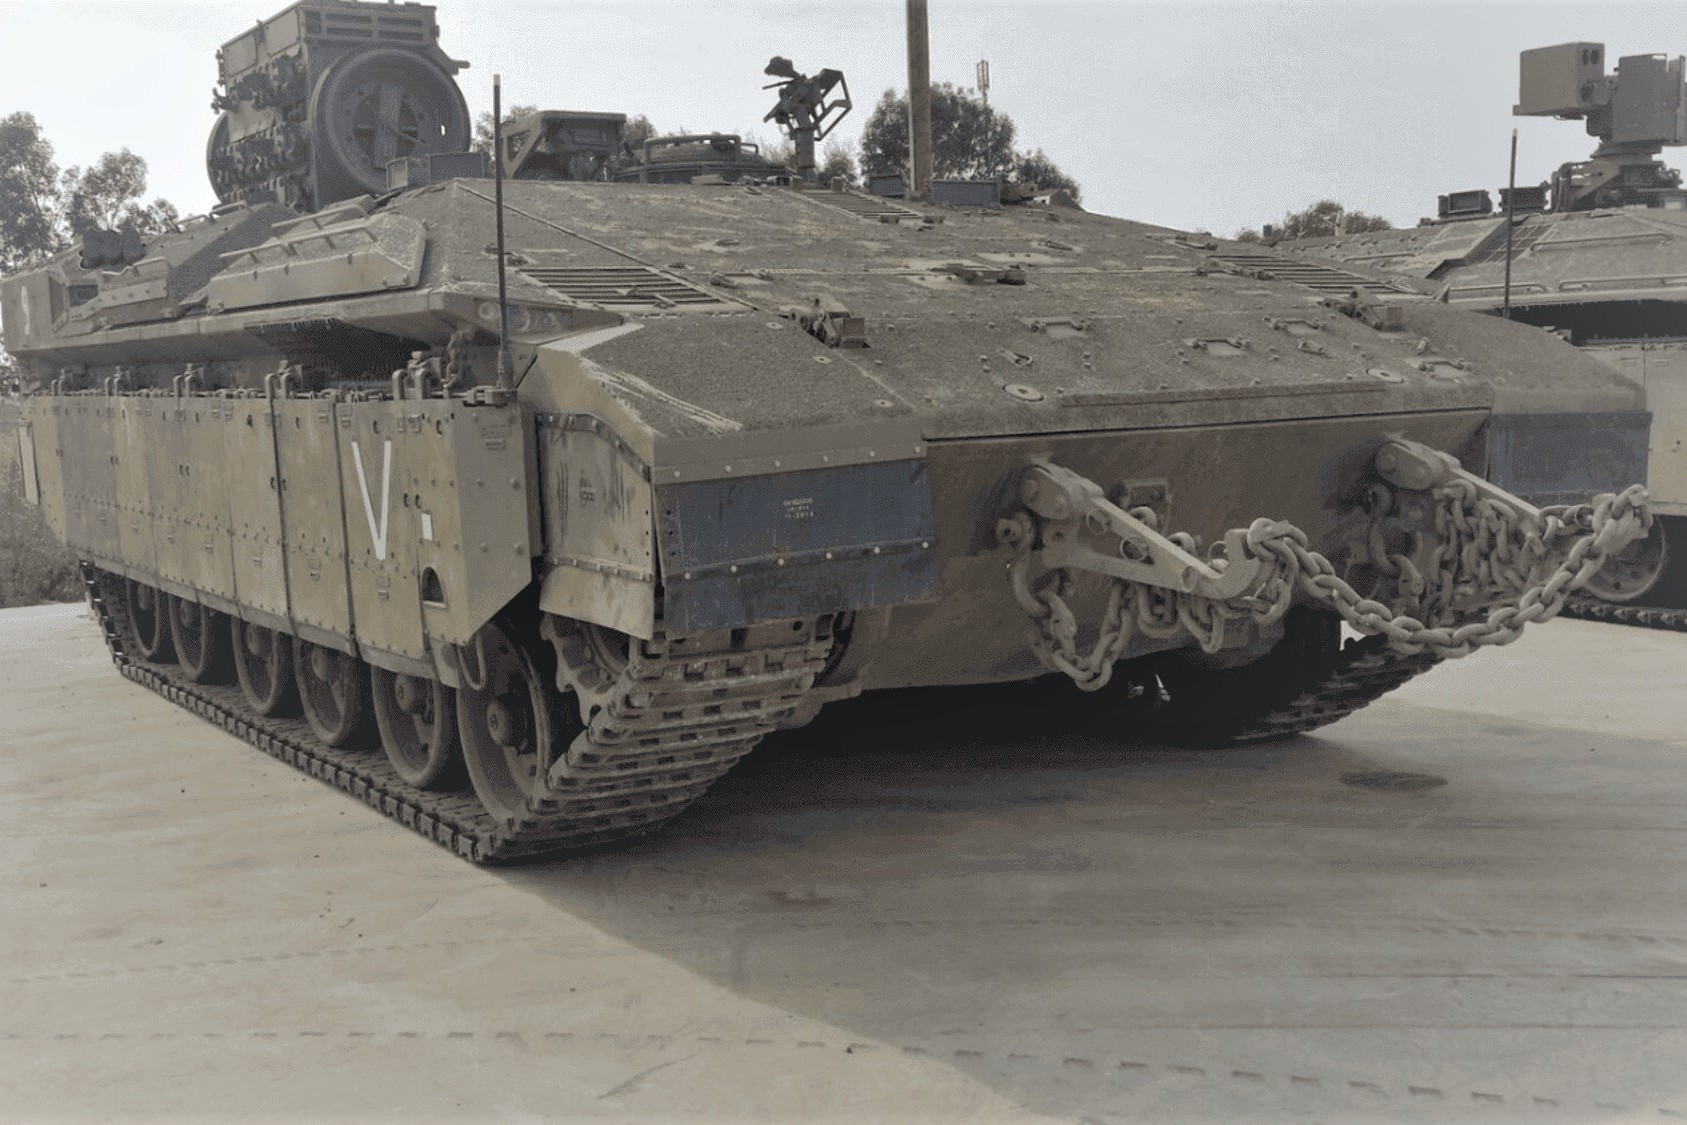 When the U.S. Army decided to build a road, testing and repair pavement for heavy tanks in Israel, they were looking for a partner capable of creating a tough and long lasting surface, while solving the perennial problem of steel tracks damaging concrete joints. The task was not easy as tanks are probably the heaviest vehicles with a weight of 60 to 80 tons and sharp steel tracks prone to creating problems for any surface they drive on.